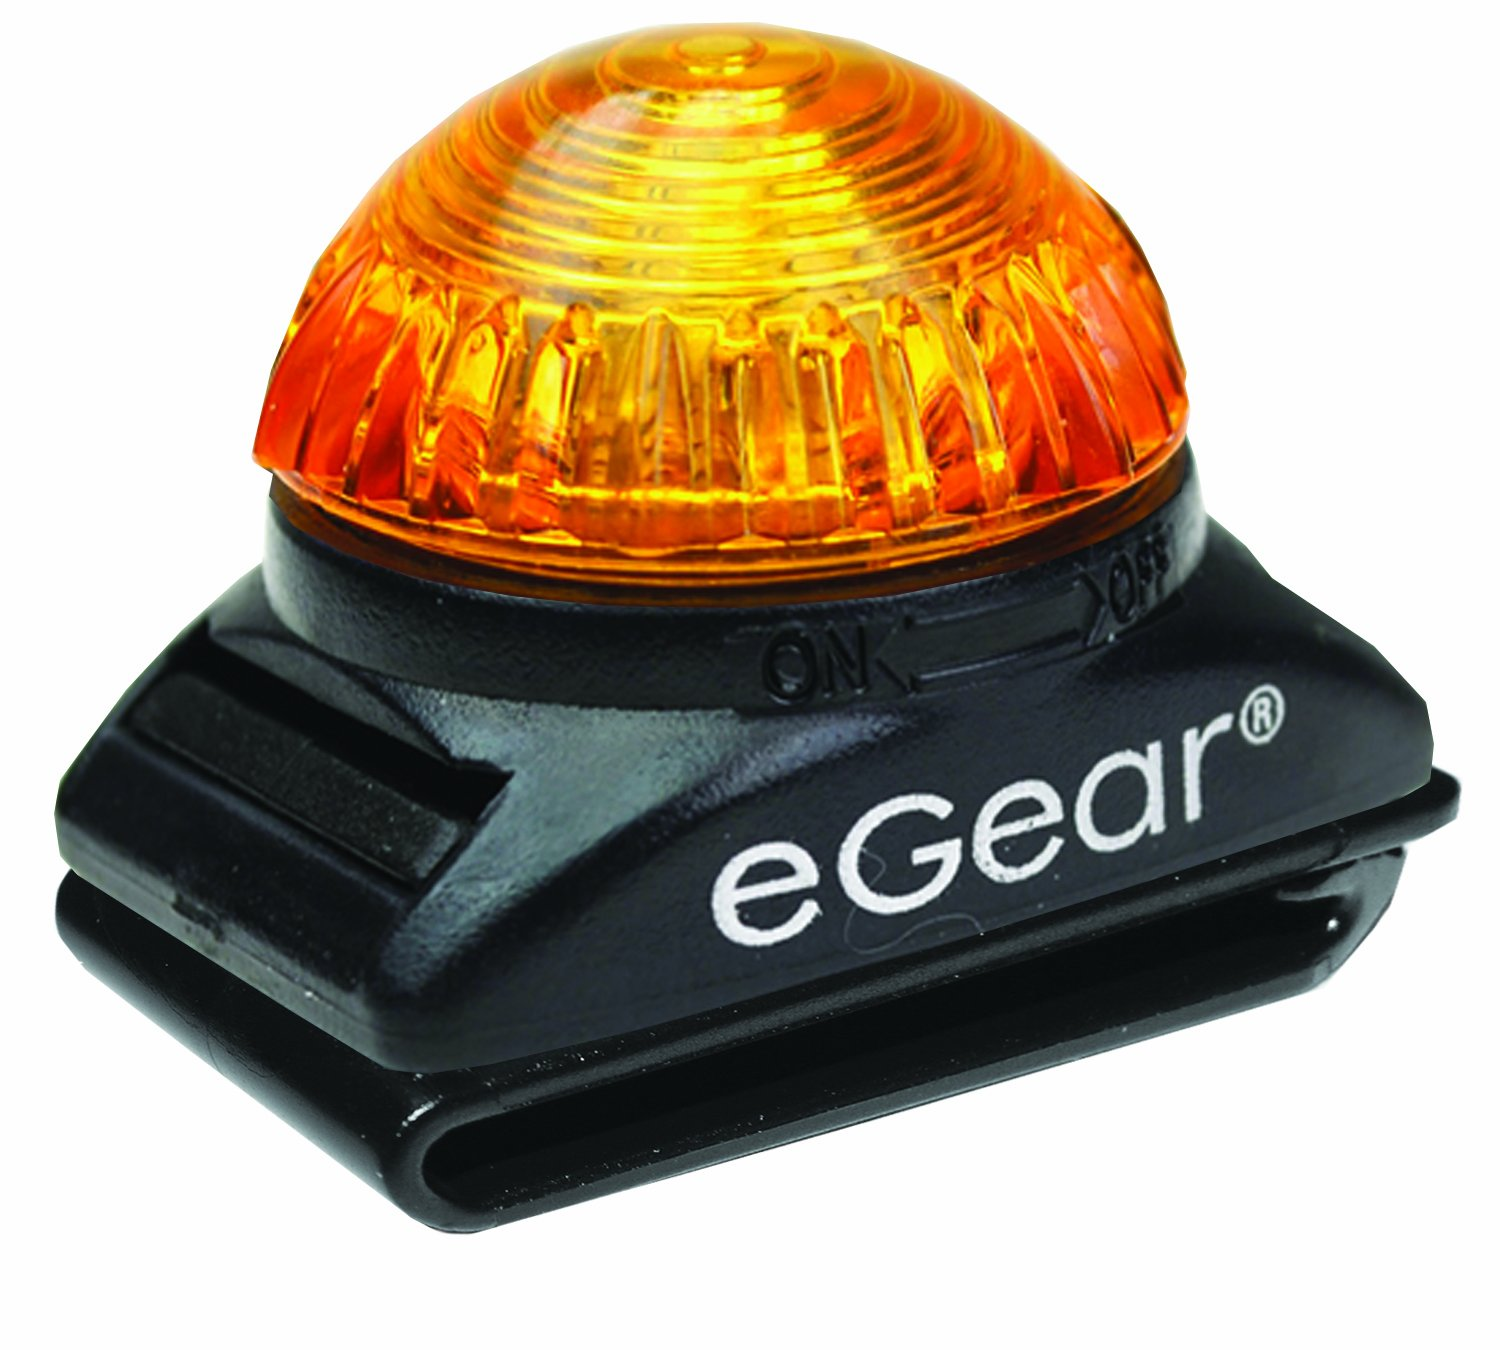 eGear Guardian Dual Function Signal Light (Yellow) Revere Supply Company 21-A54-000